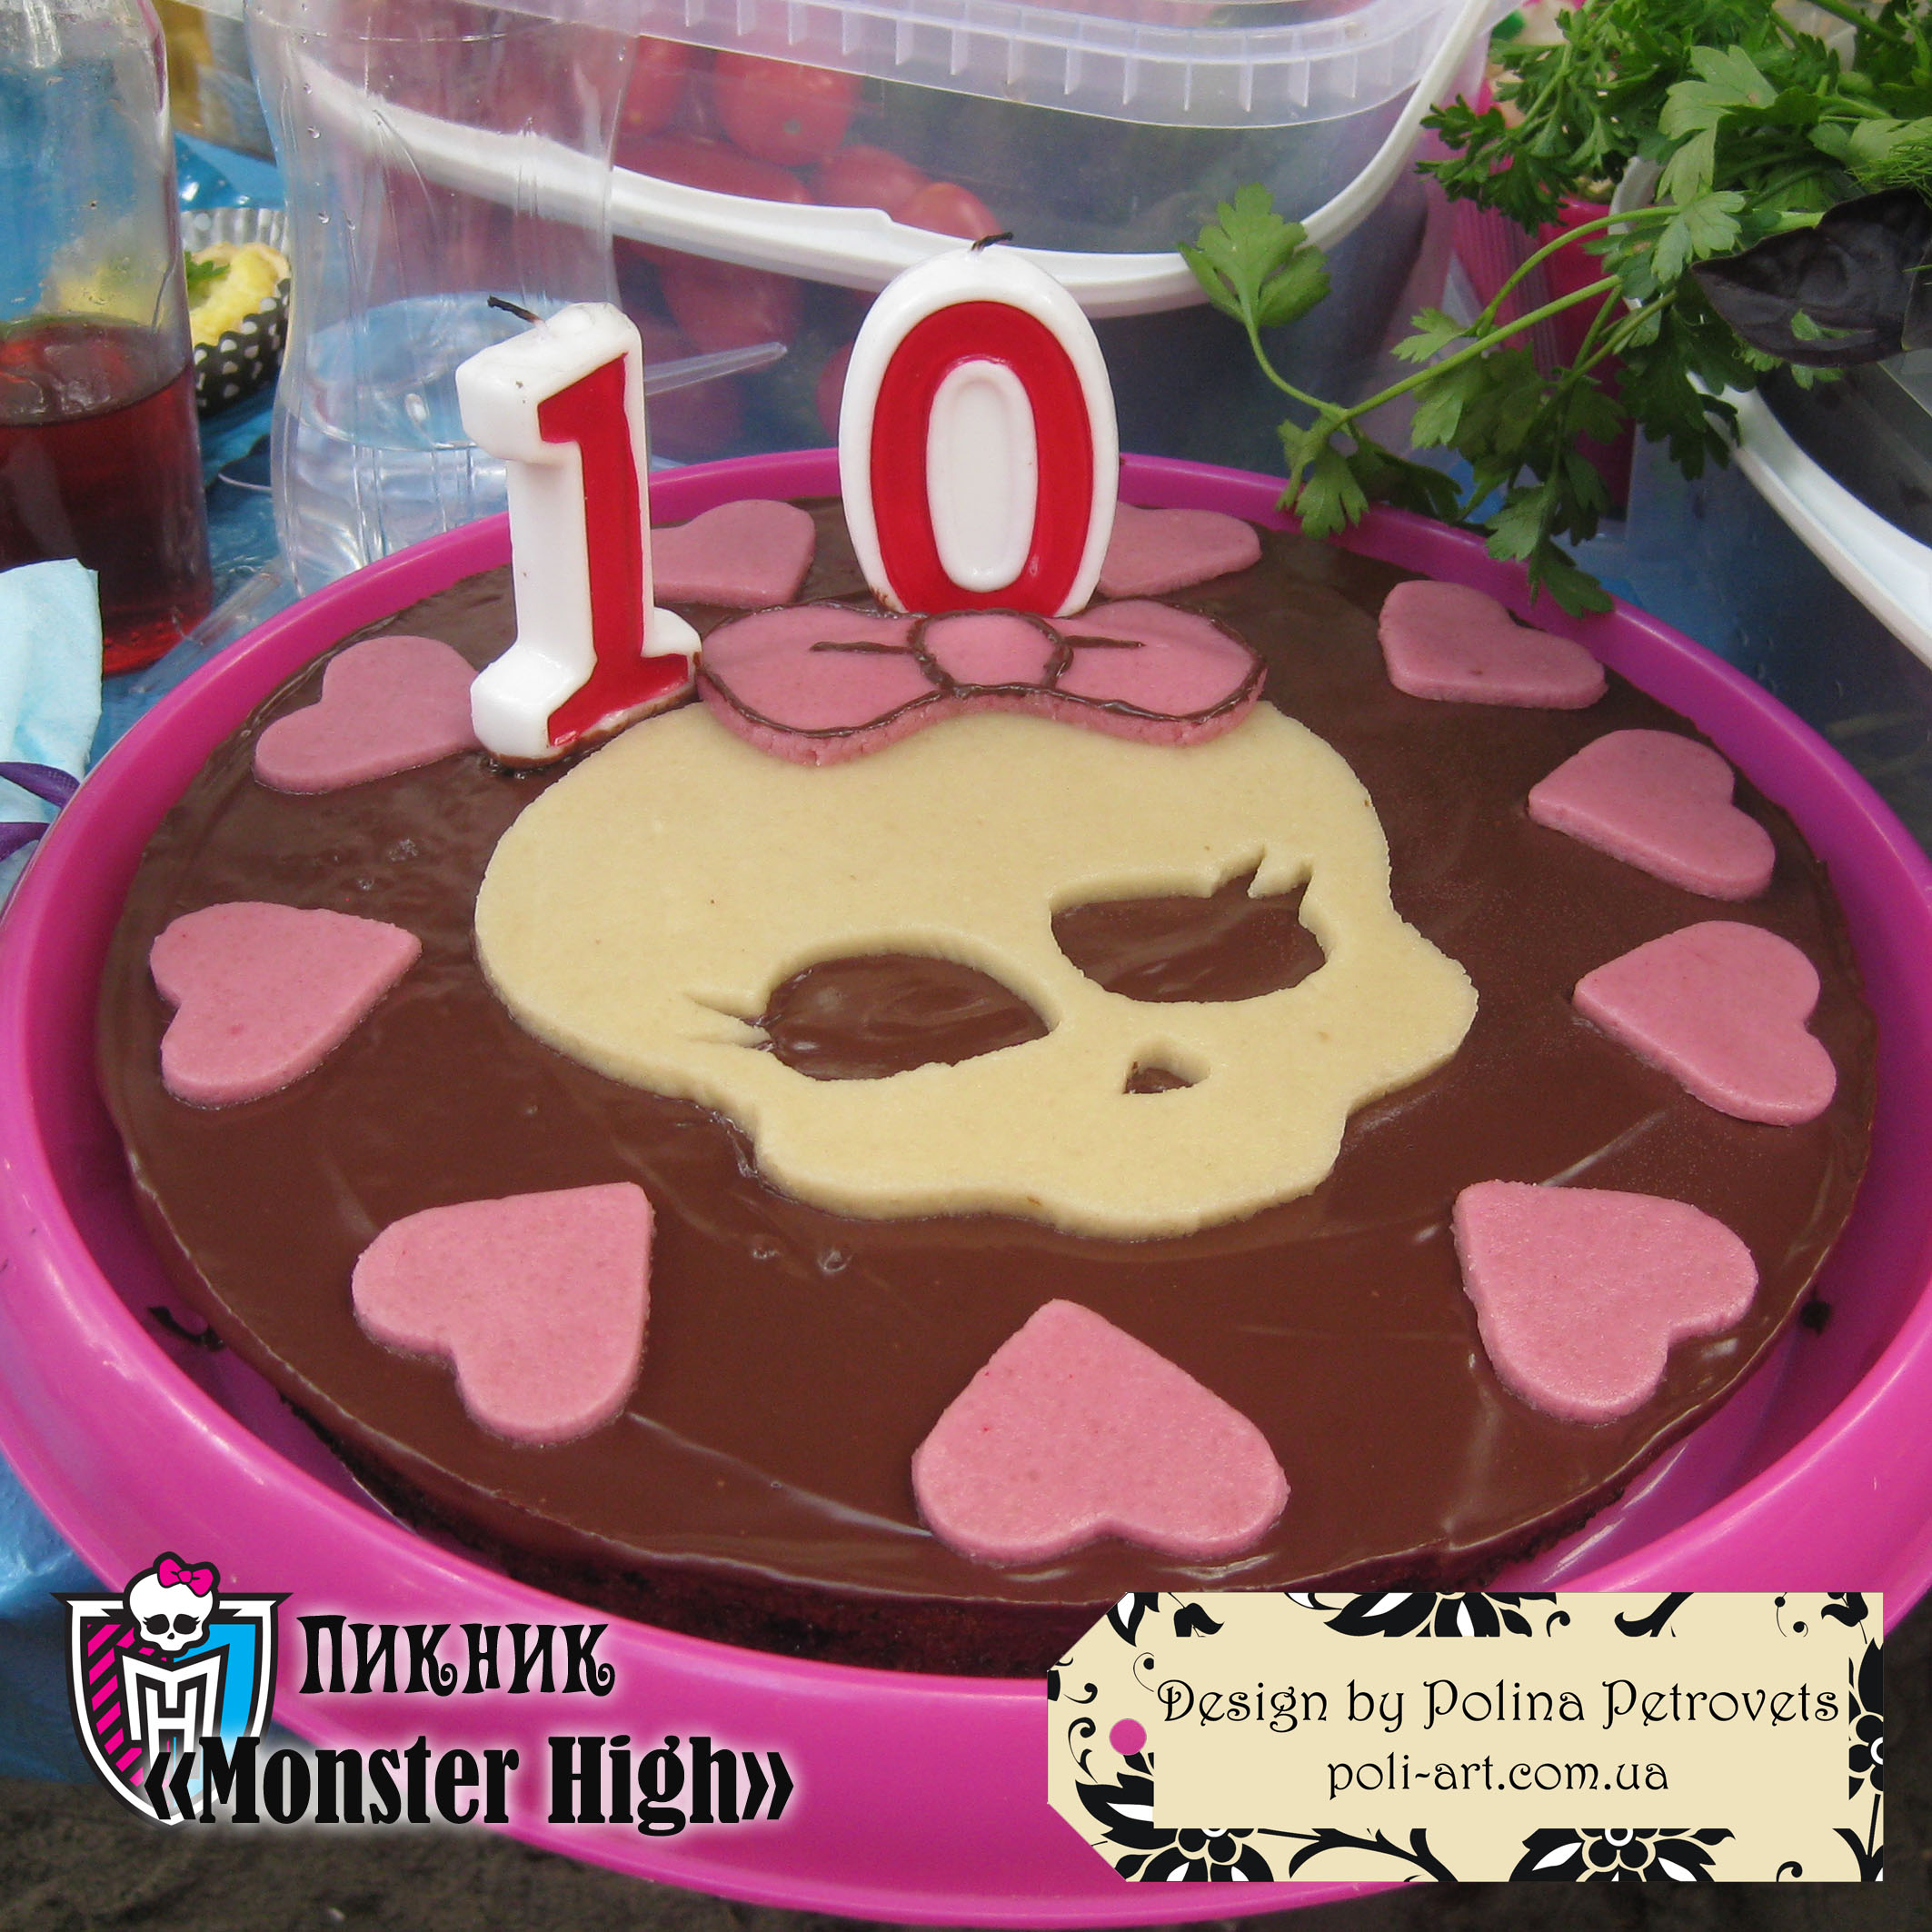 "Пикник ""Monster High"""